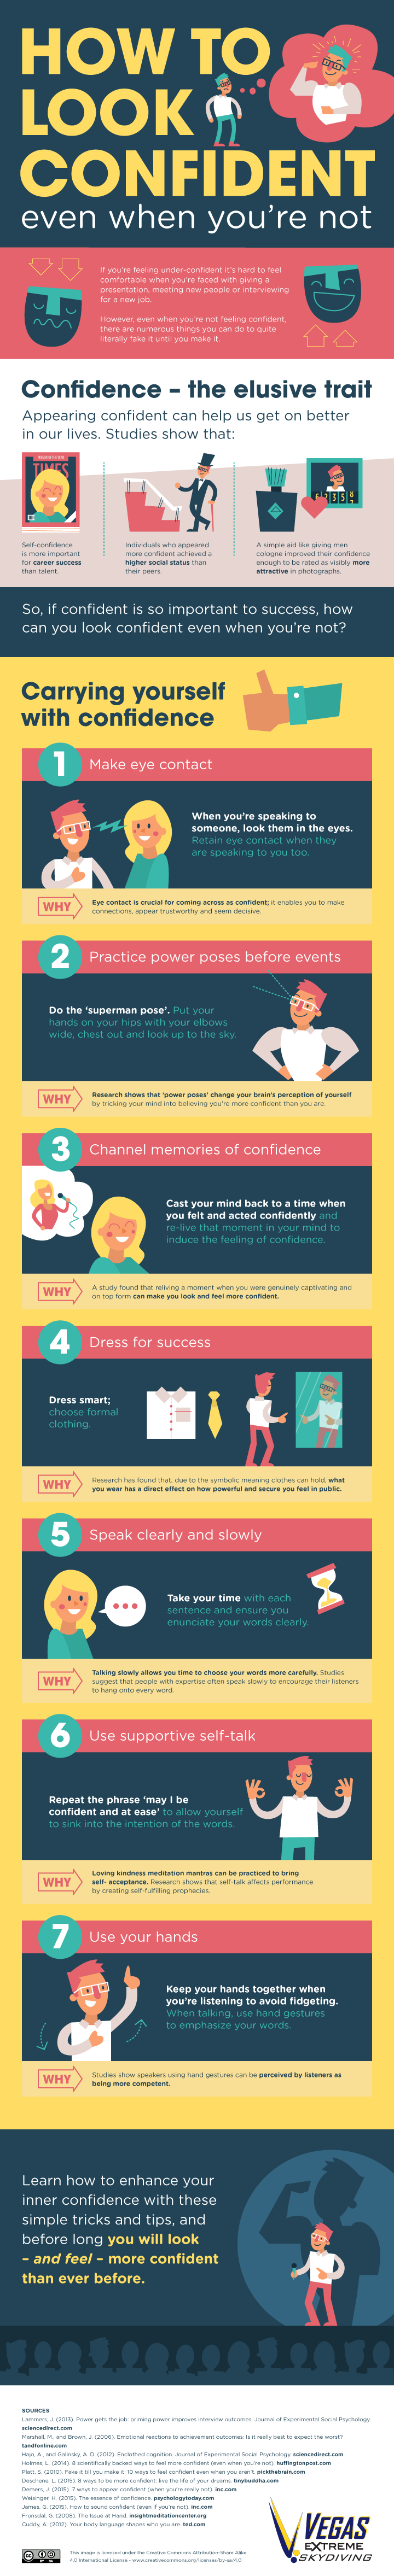 tips to be confident